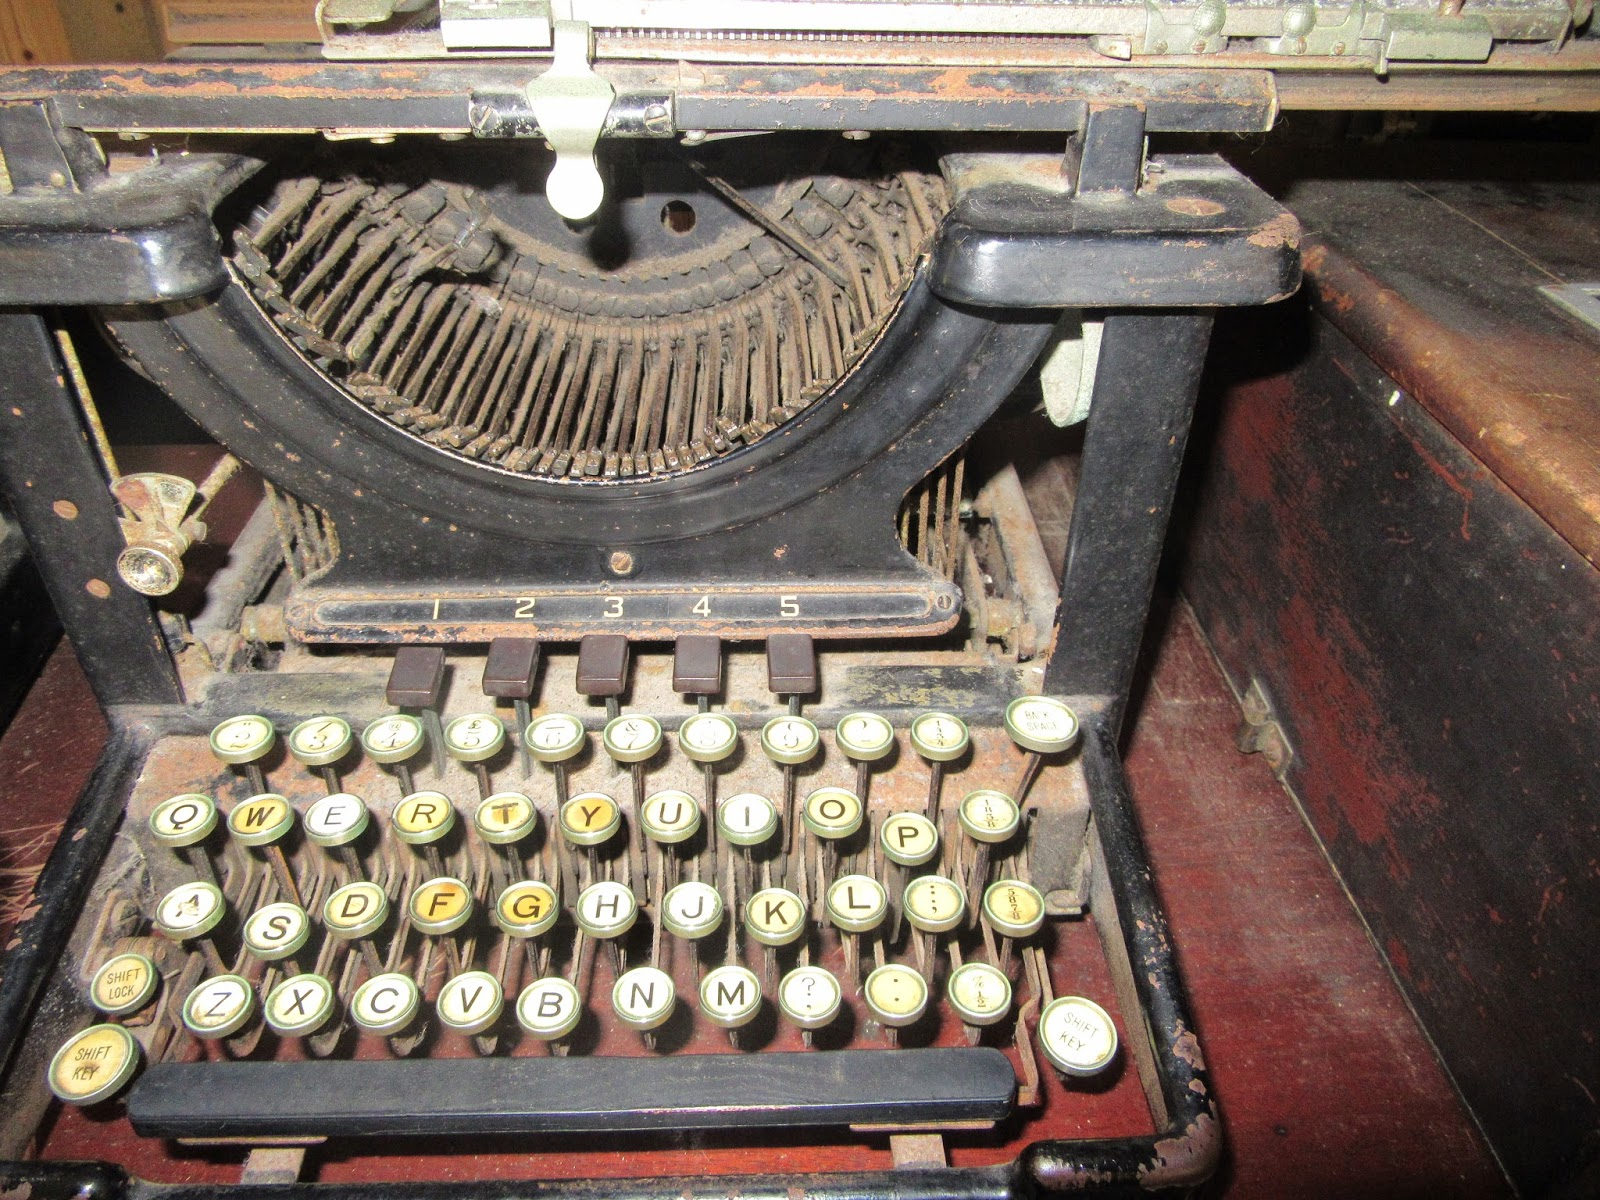 A dusty old typewriter